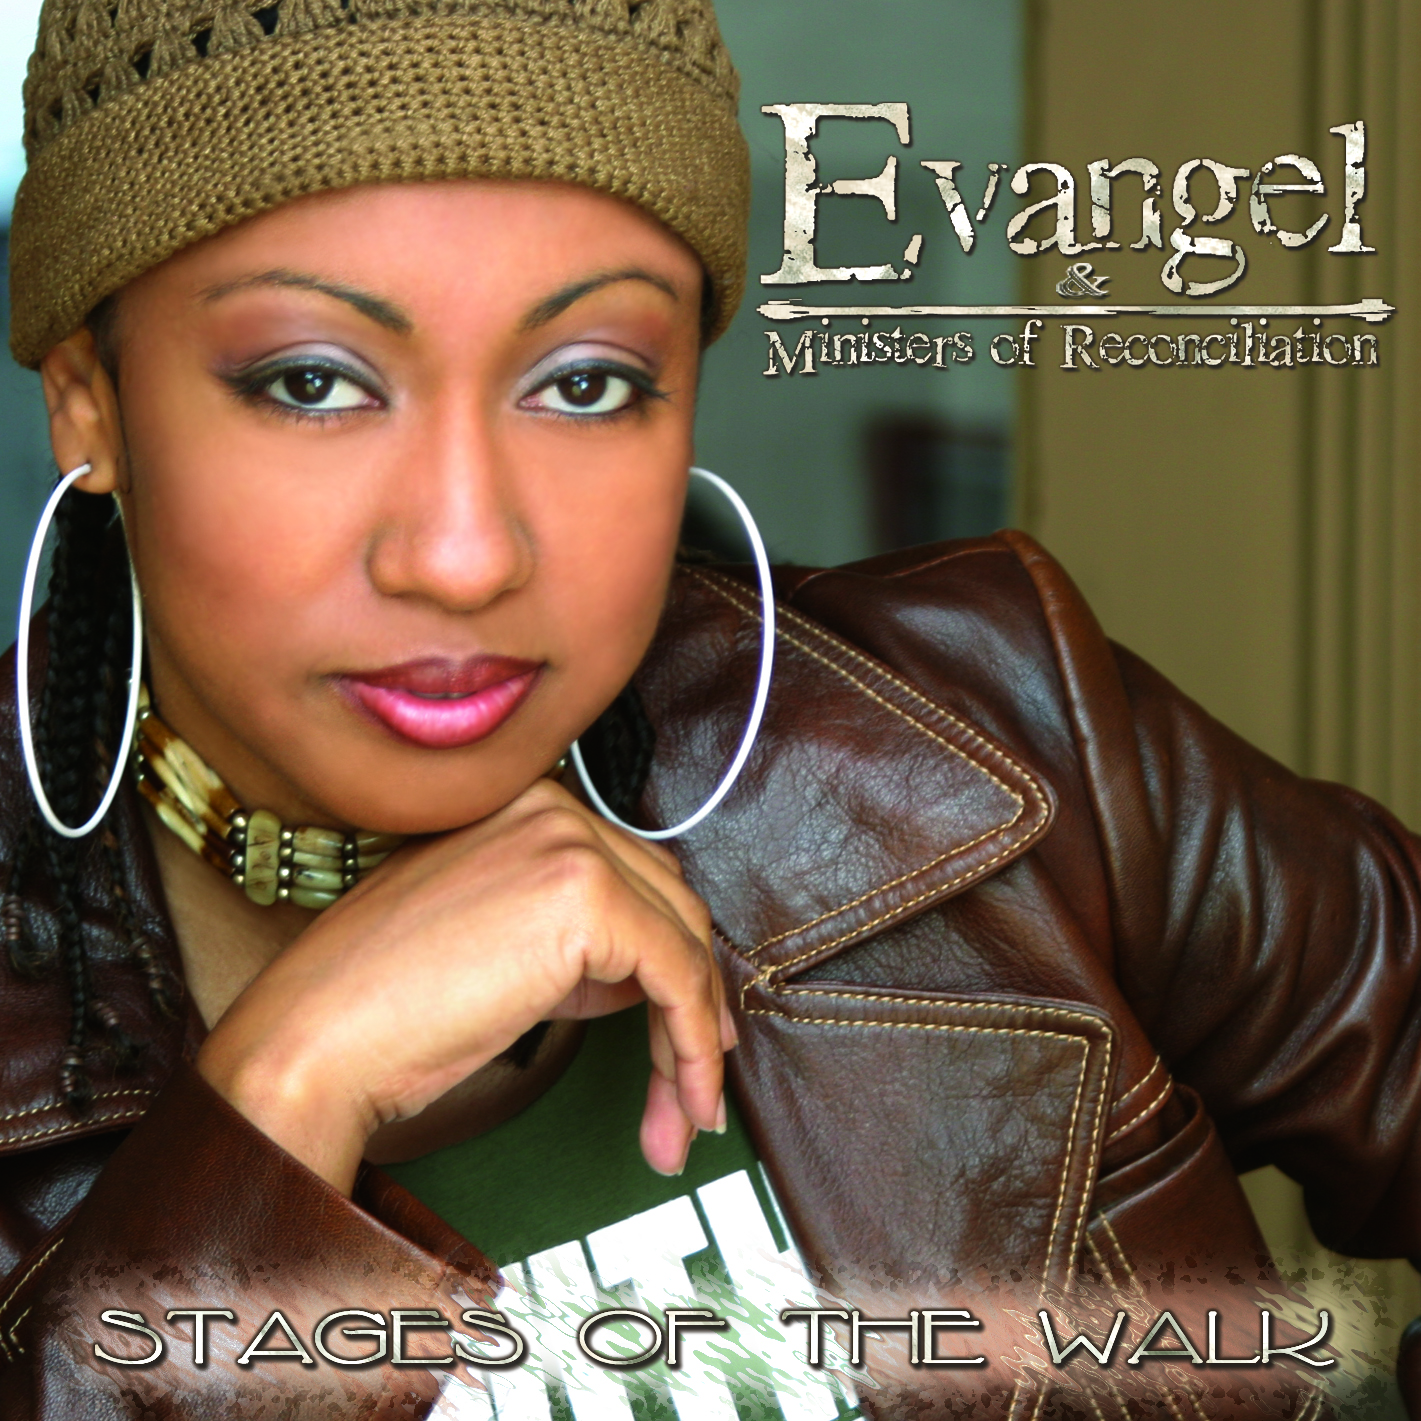 Evangelcover